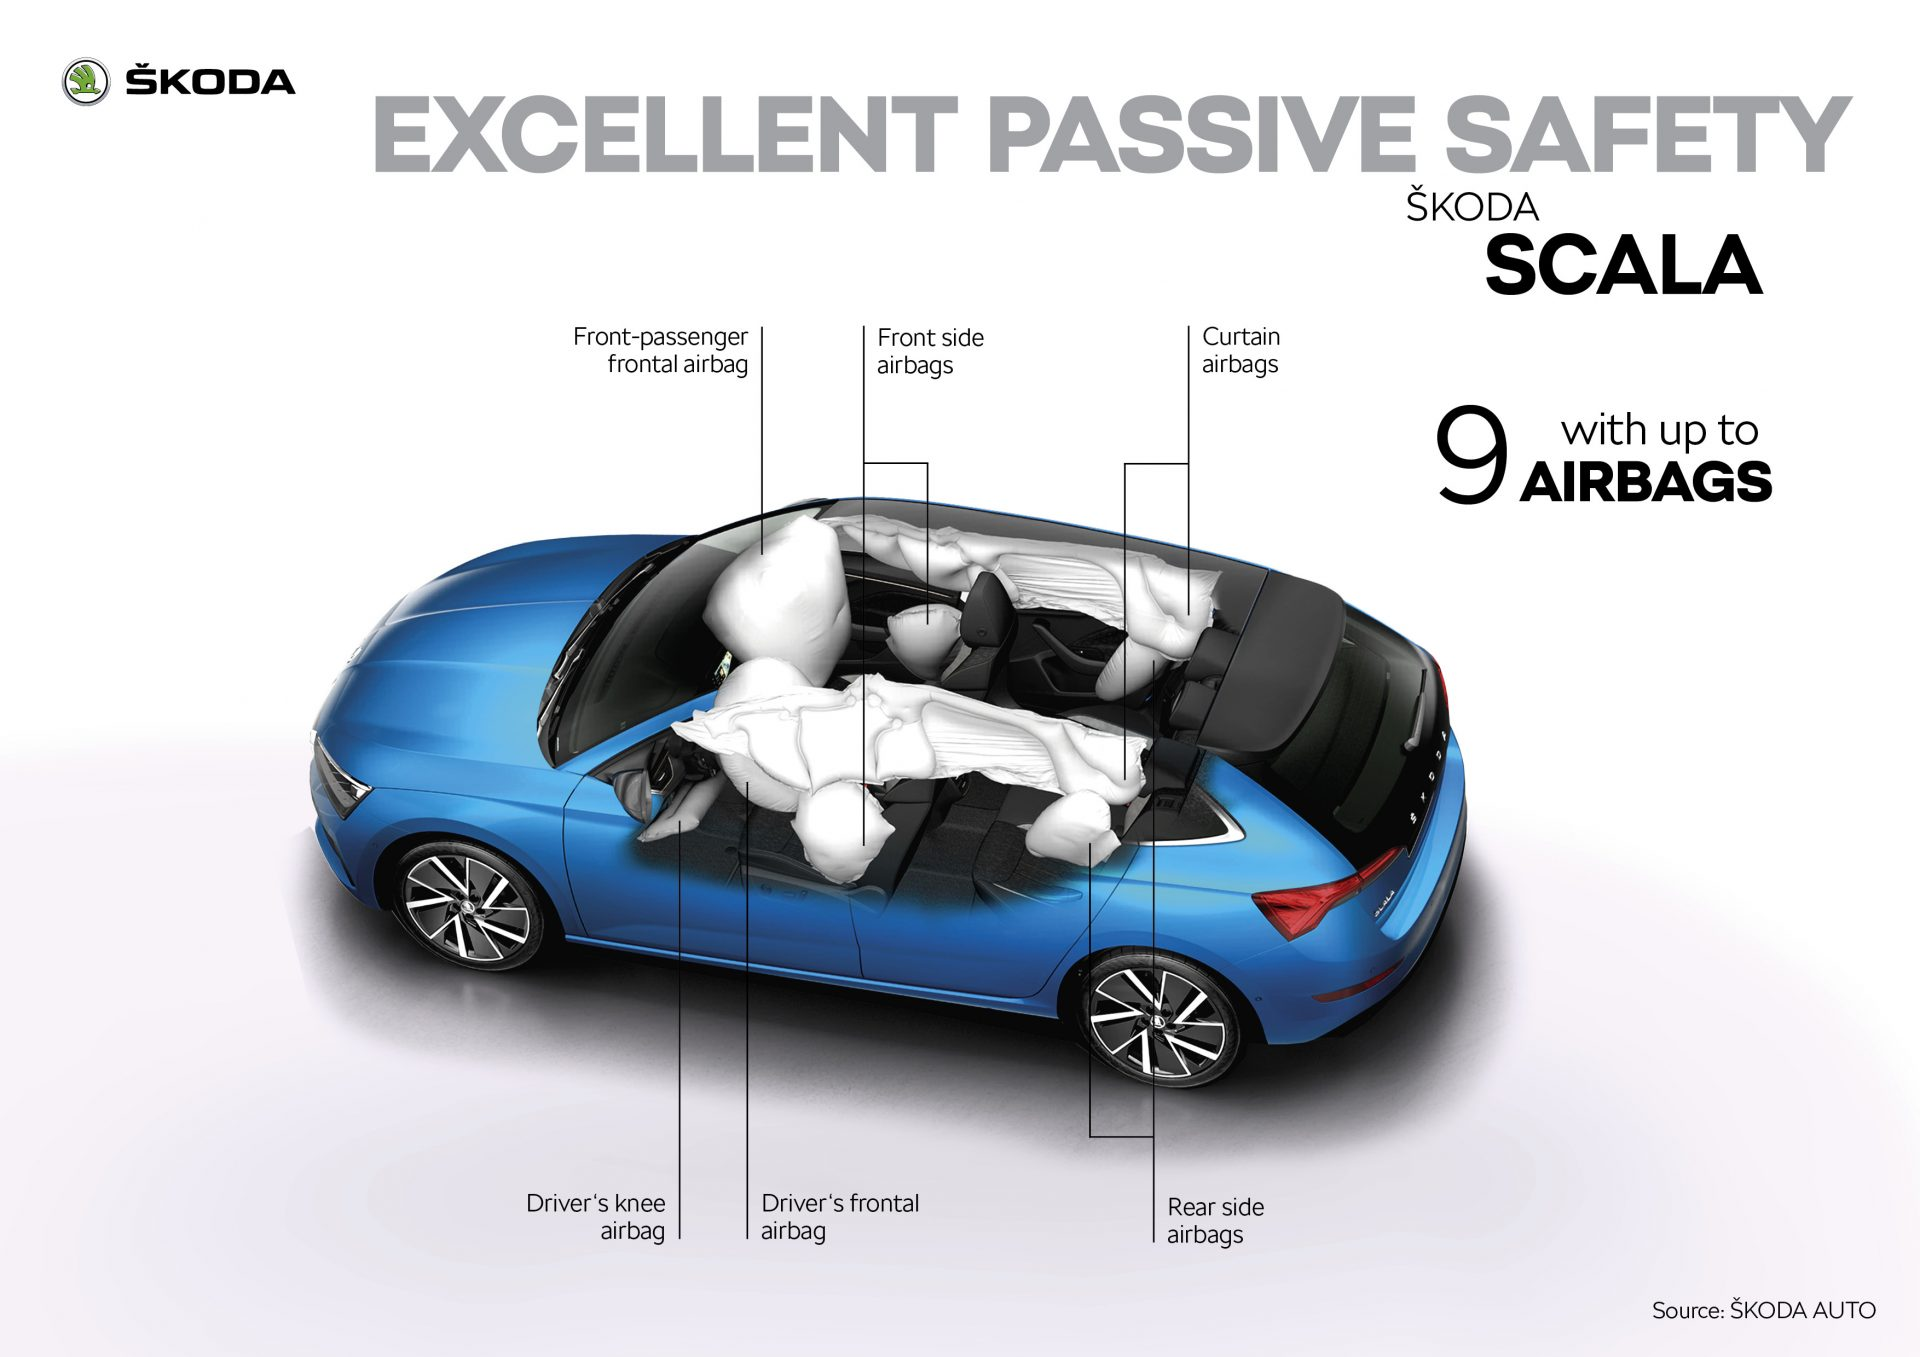 scala_excellent_passive_safety_w-1920x1357.jpg